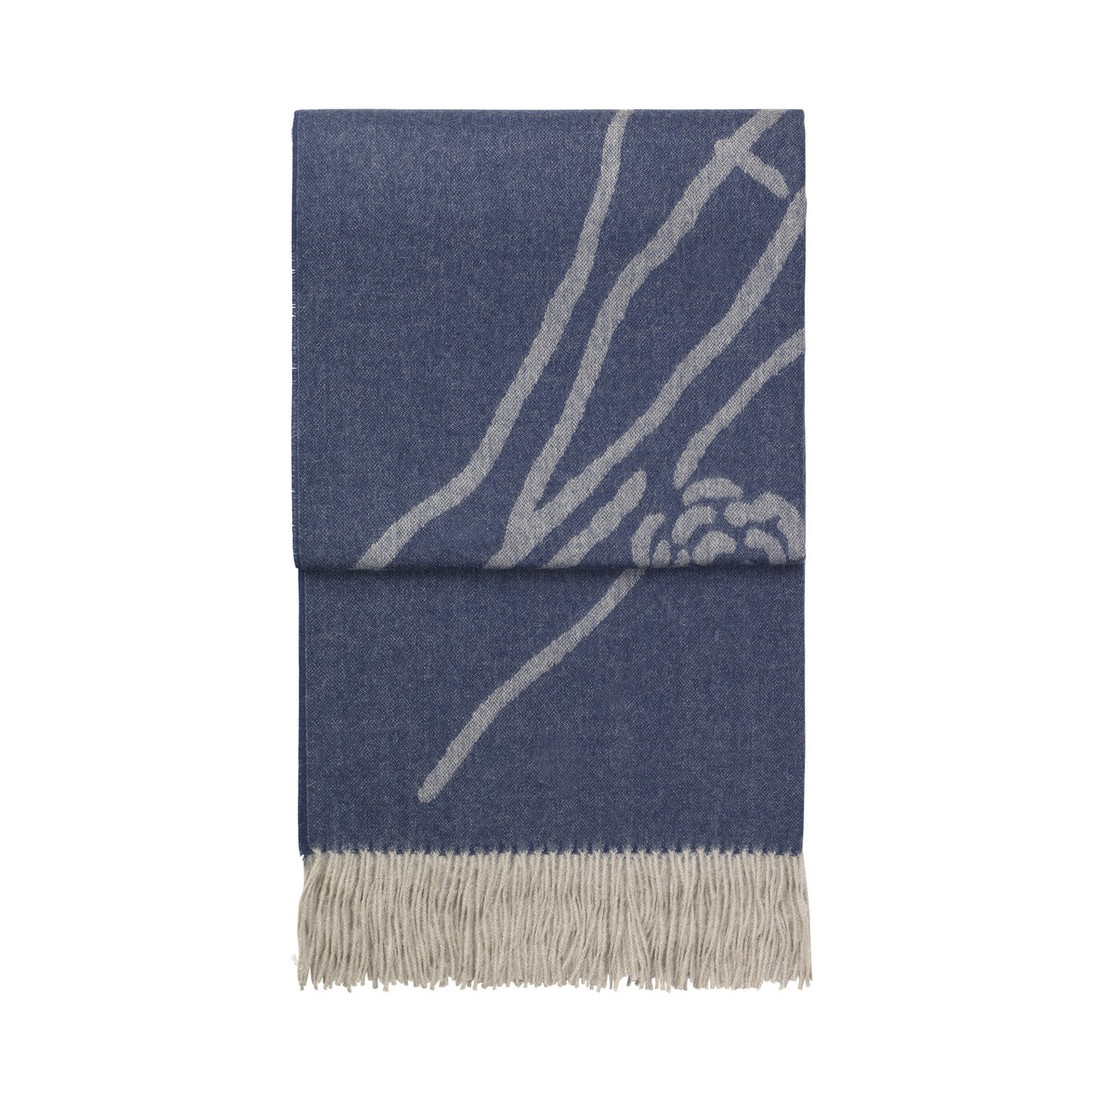 Decke Wildflower (dark blue/beige) by ELVANG DENMARK